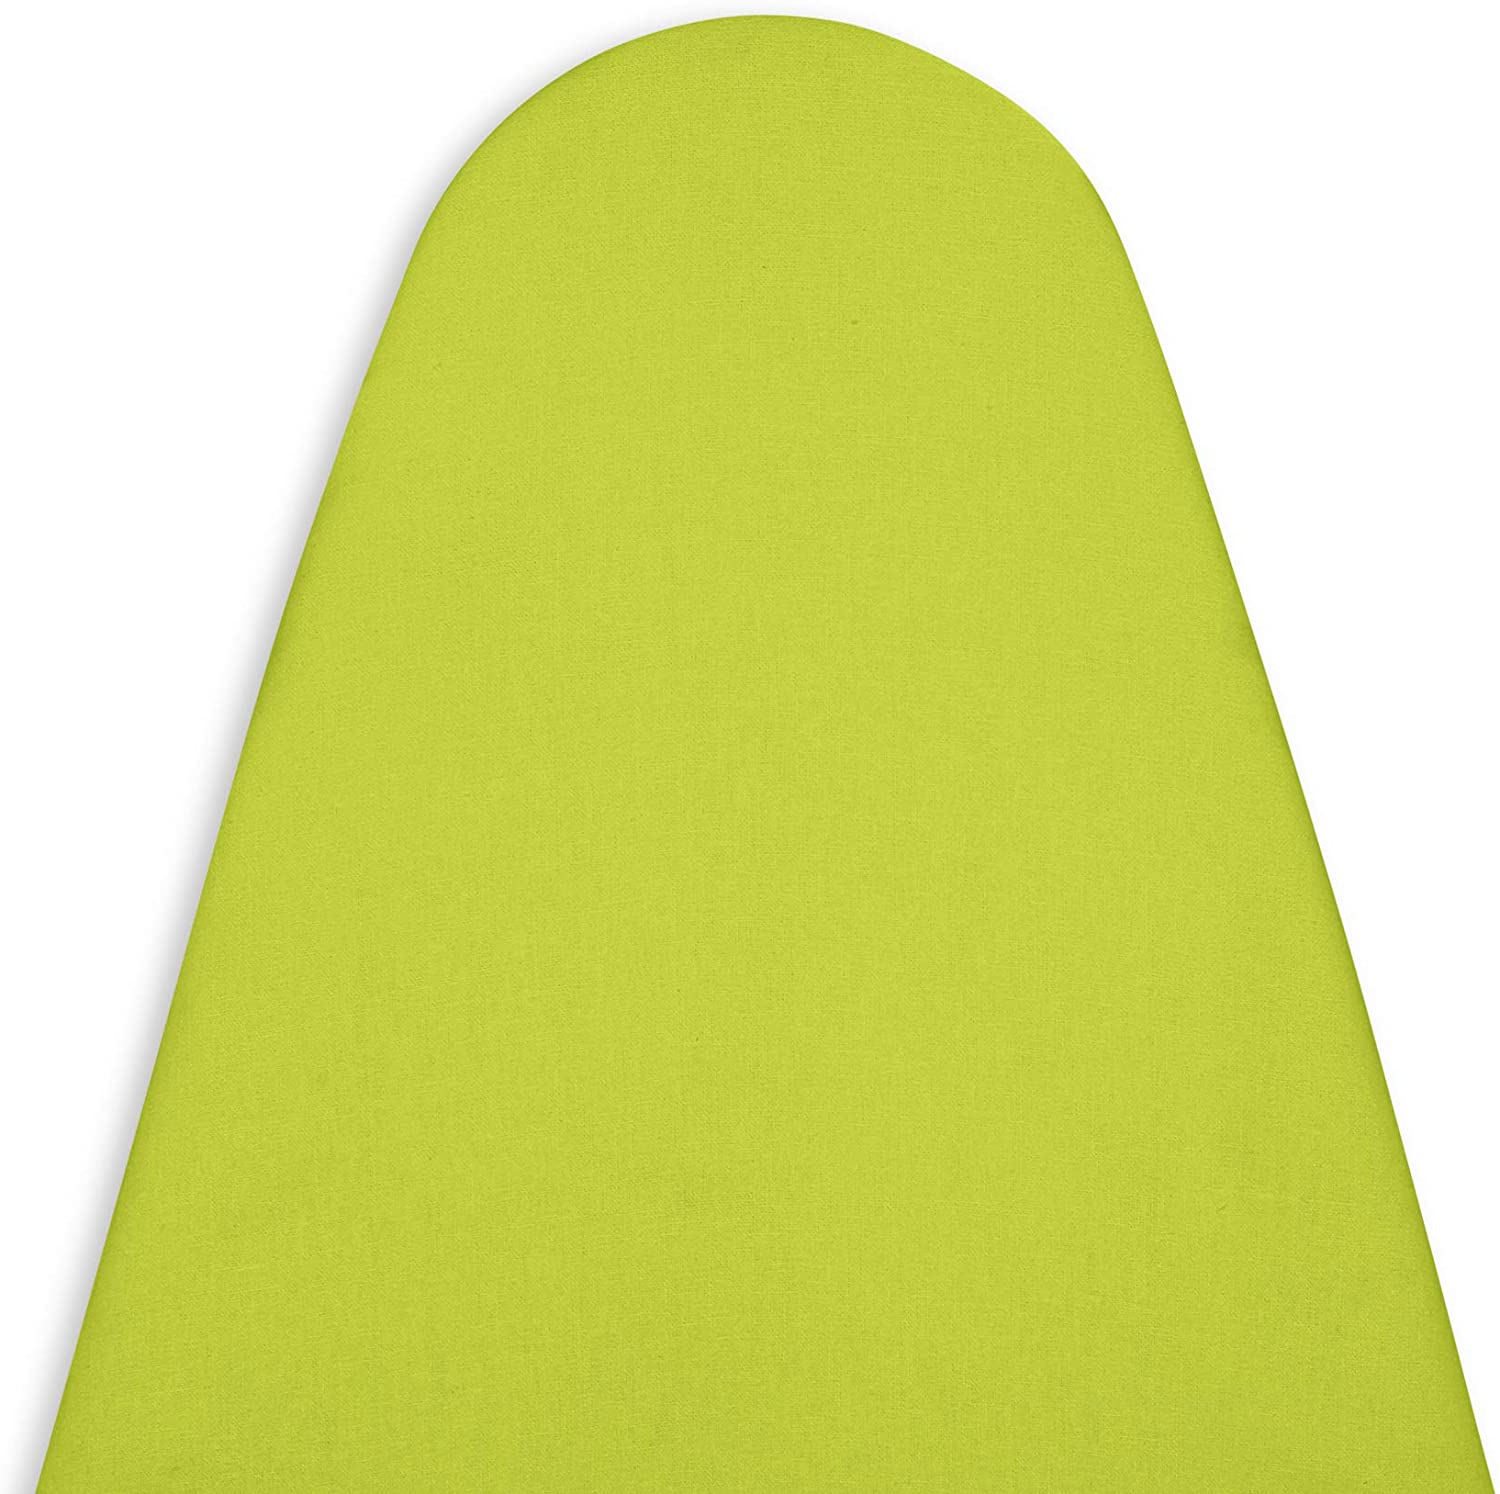 Black Arrow Drawstring Tightening, Heat Reflective Fits Standard Large Boards of 15 x 54 inch Encasa Homes Replacement Ironing Board Cover with Thick Felt Pad Printed Scorch /& Stain Resistant